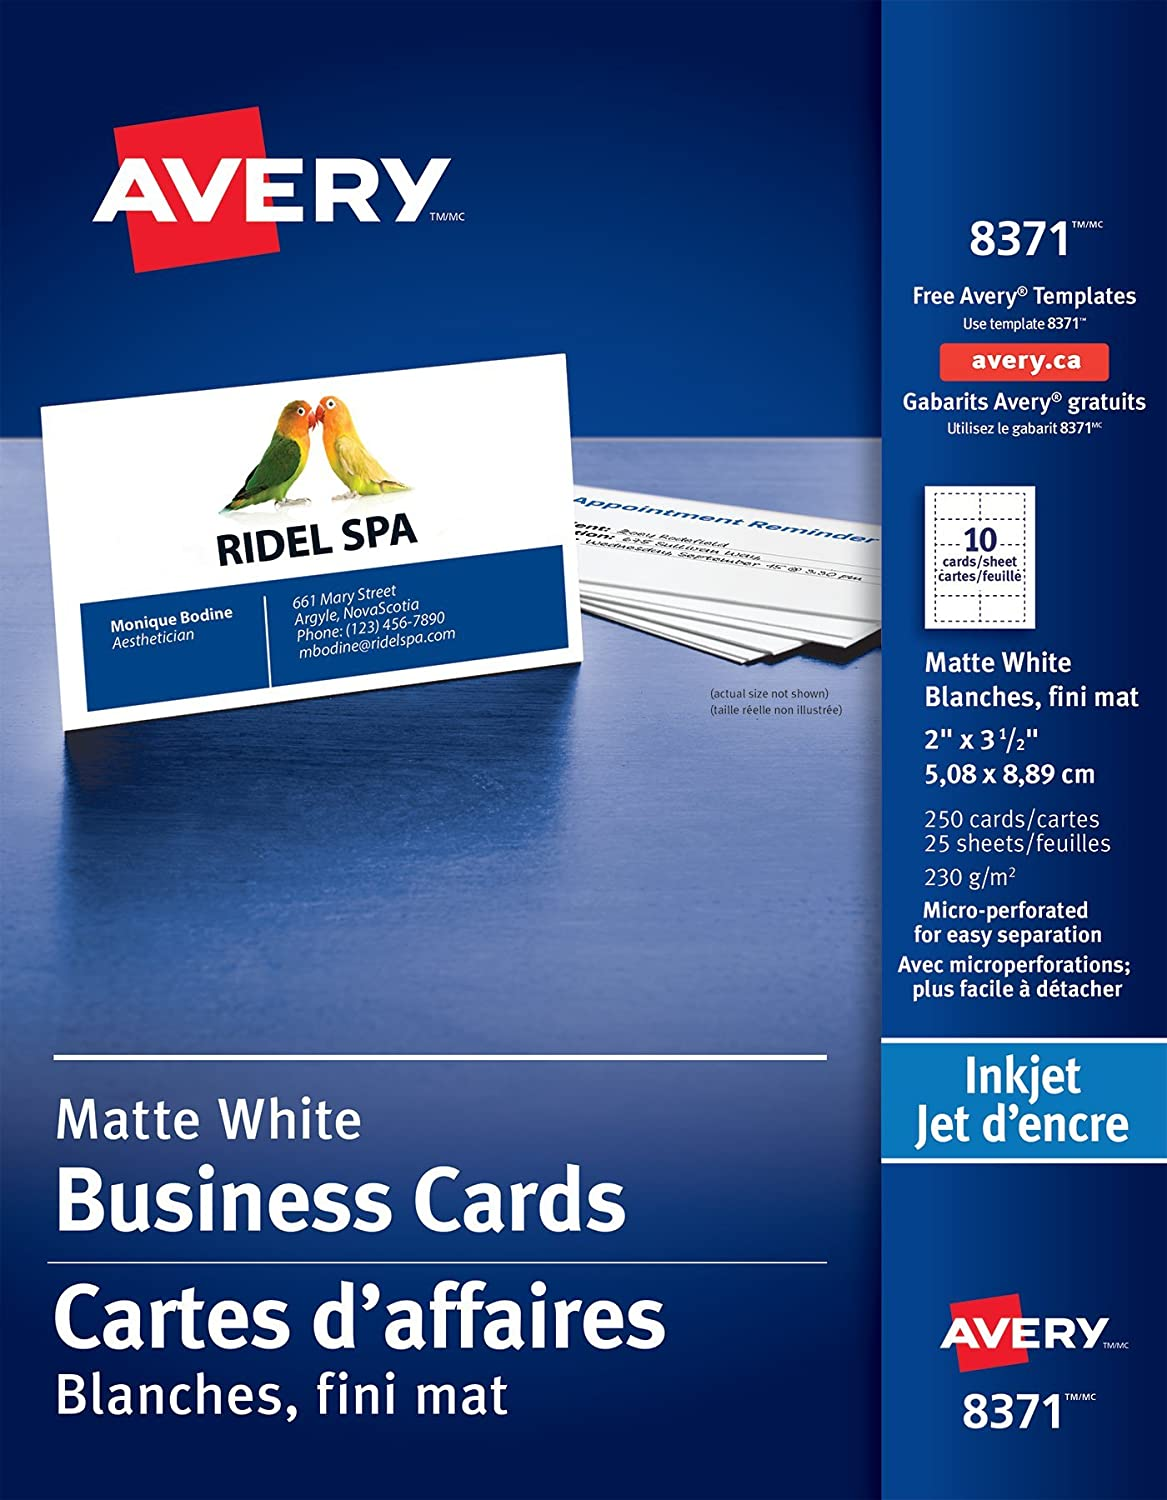 Avery Perforated Business Cards for Inkjet Printers, 2 x 3-1/2, White, Matte Coated, 250 Pack, Rectangle (8371) 2 x 3-1/2 08371